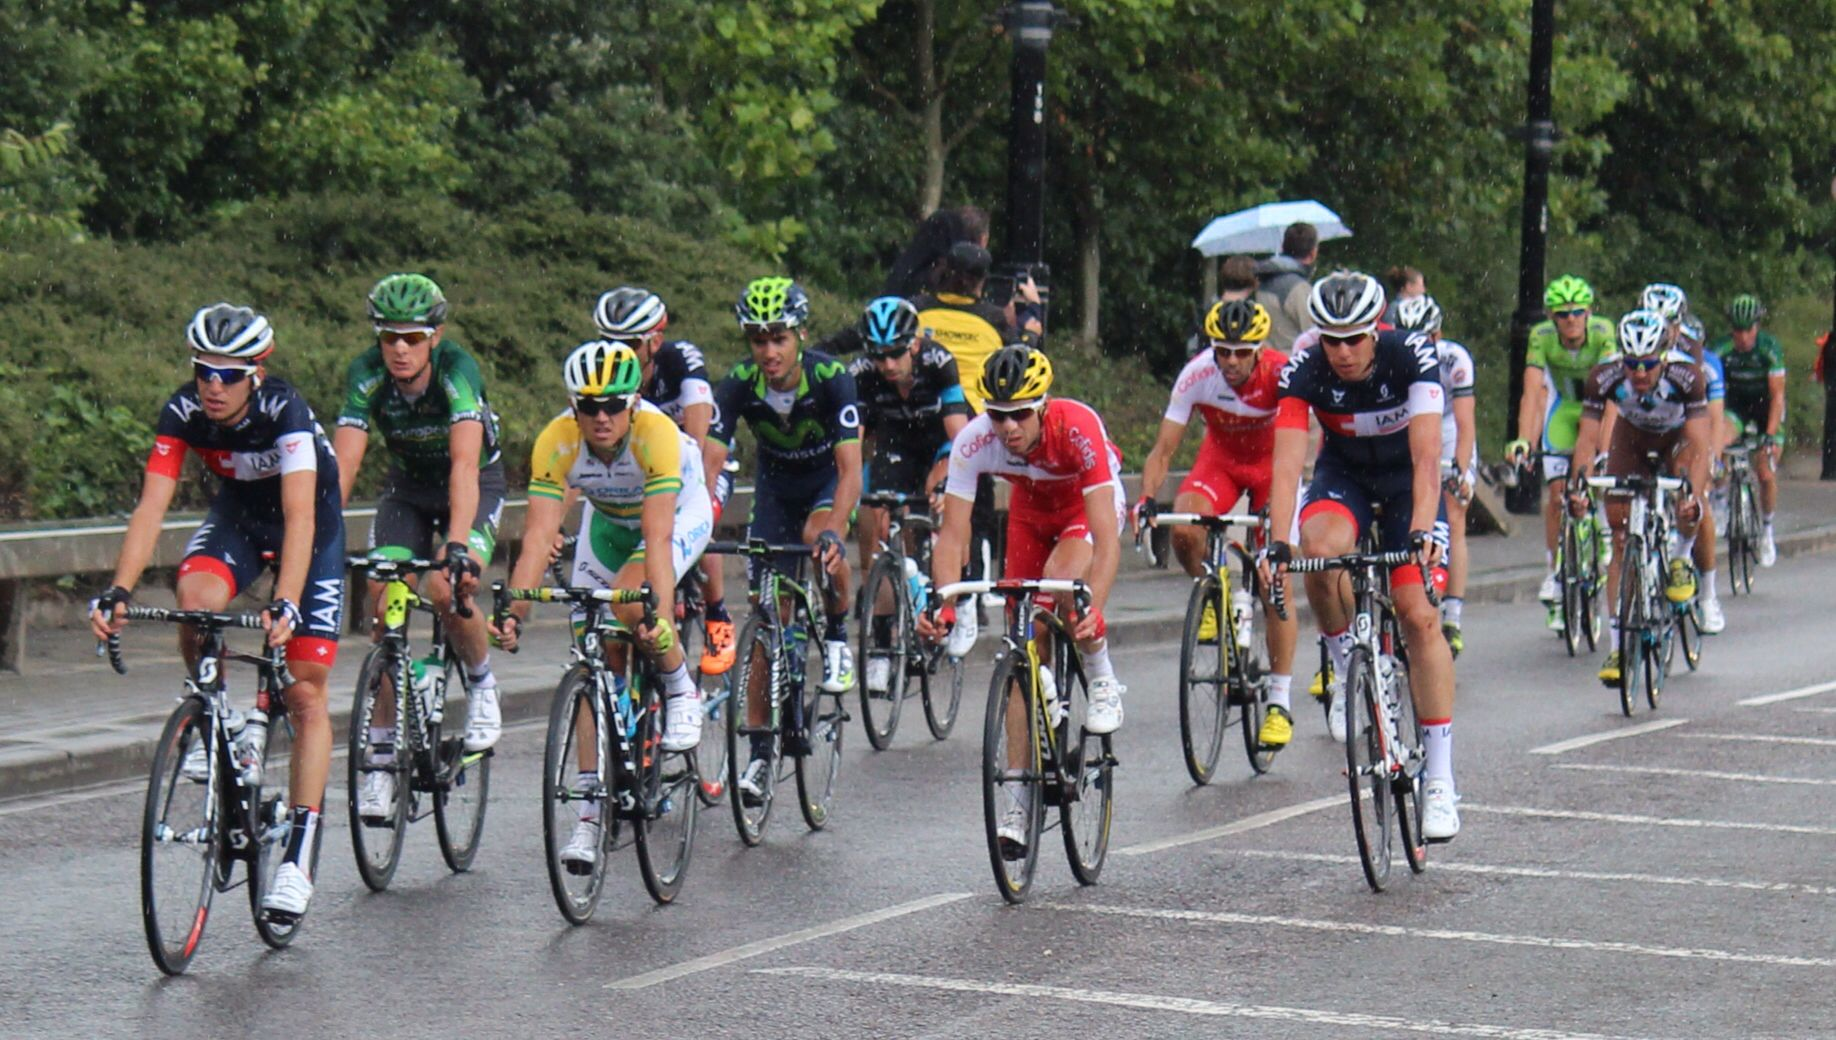 The Peloton also included the Australian road champion Simon Gerrens - Tour de France Stage 3 Cambridge to London